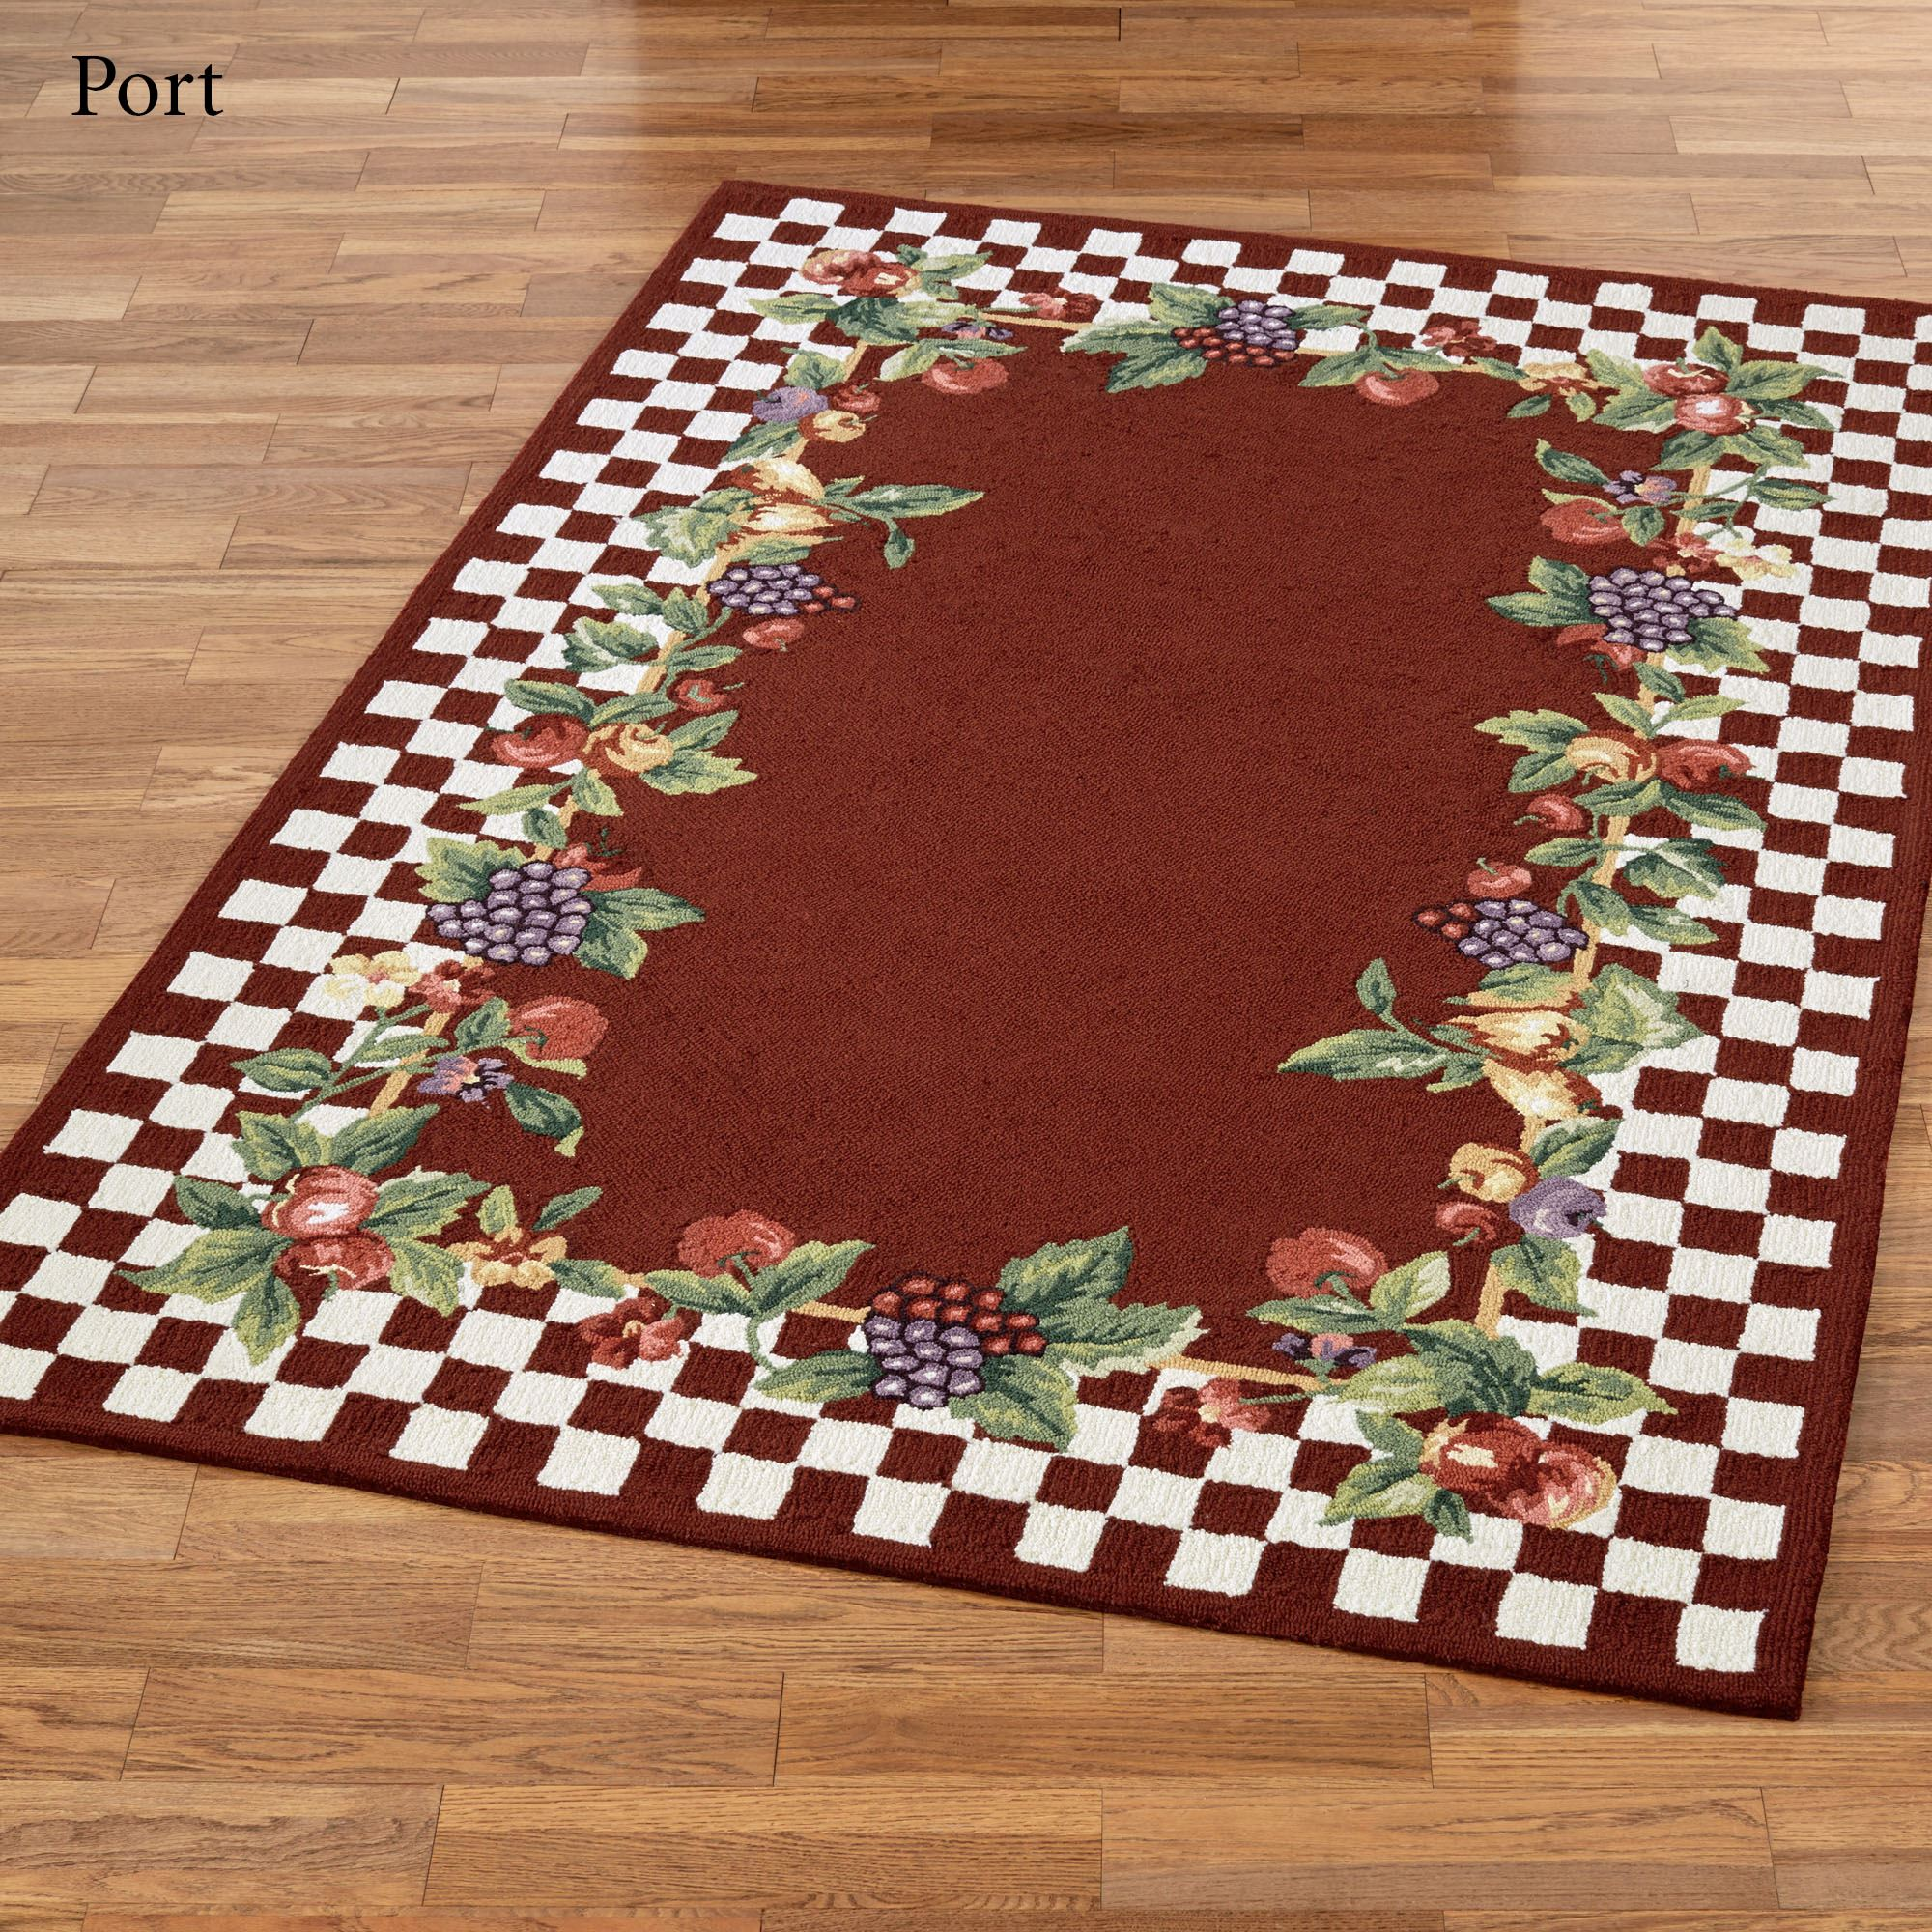 Sonoma Hand Hooked Fruit Area Rugs